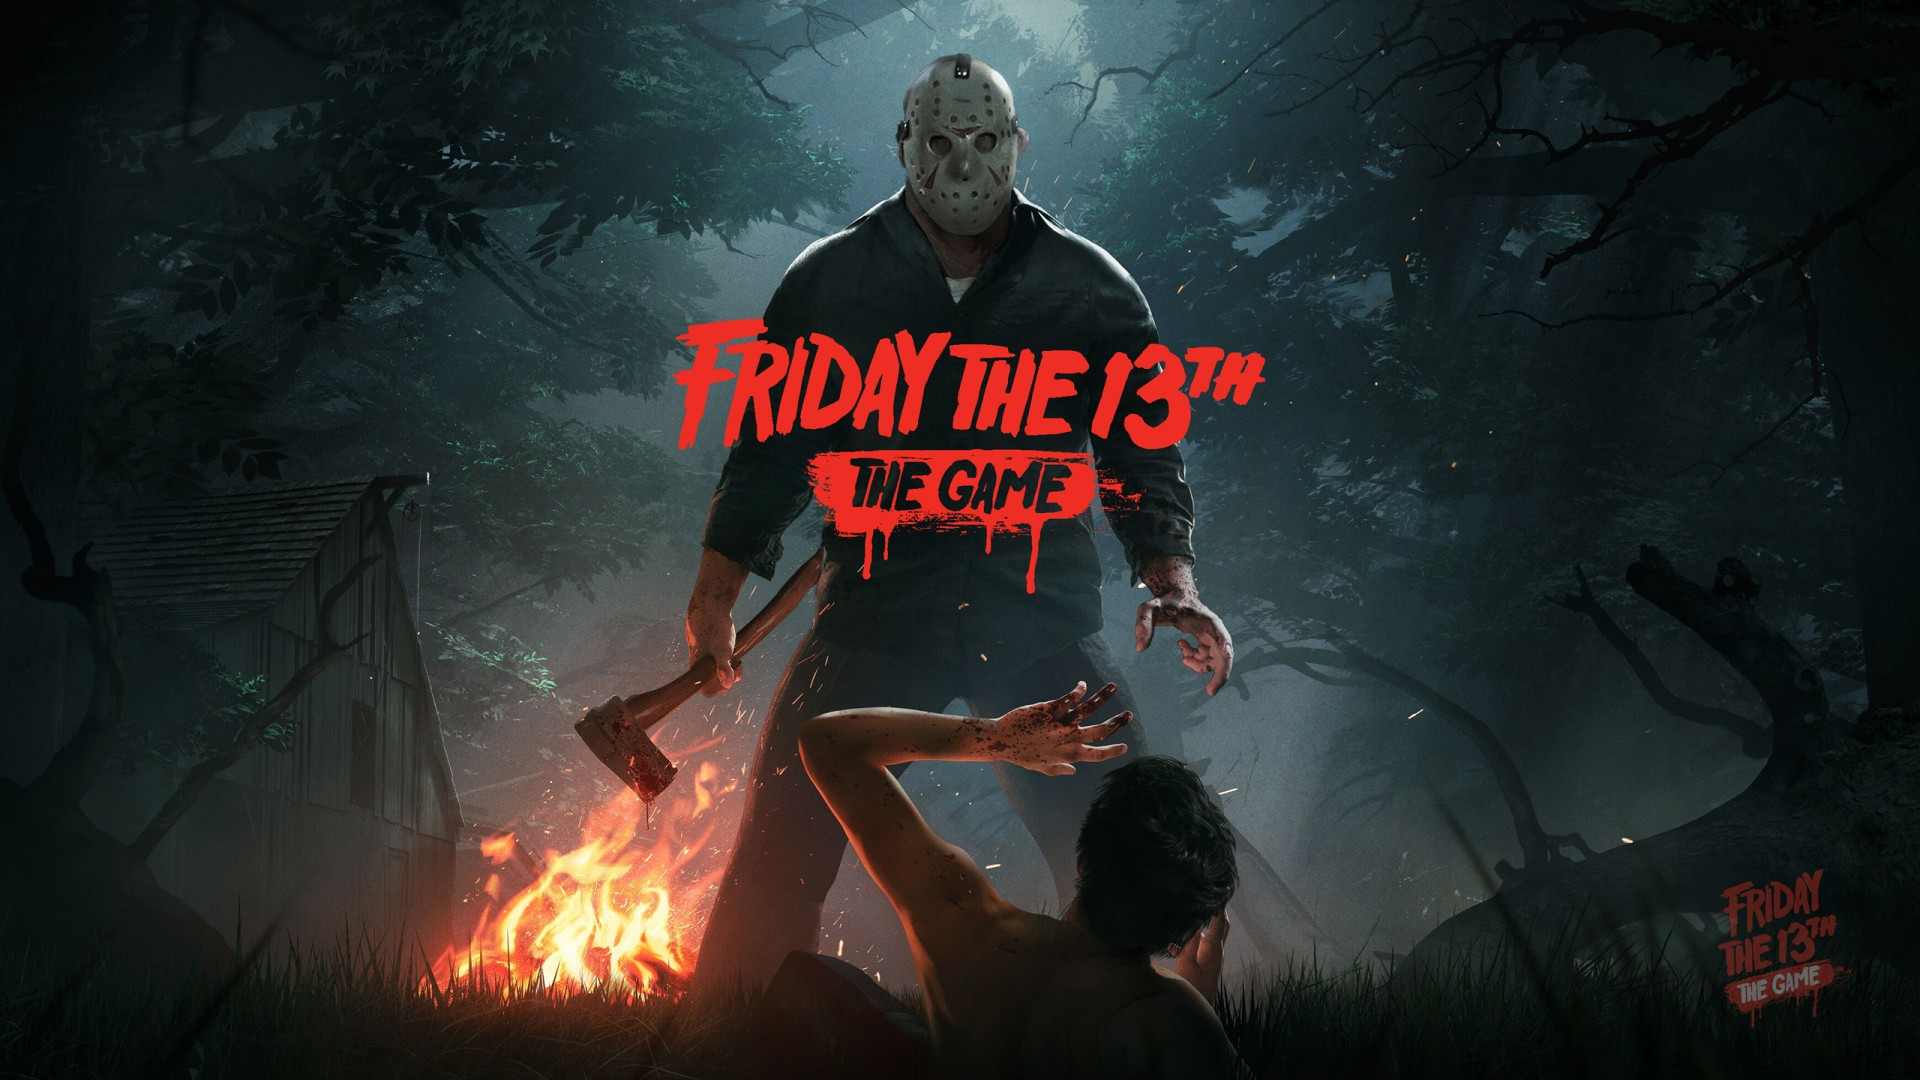 Friday The 13th Iphone Wallpaper Friday The 13th The Game Wallpapers Hd Wallpapers Id